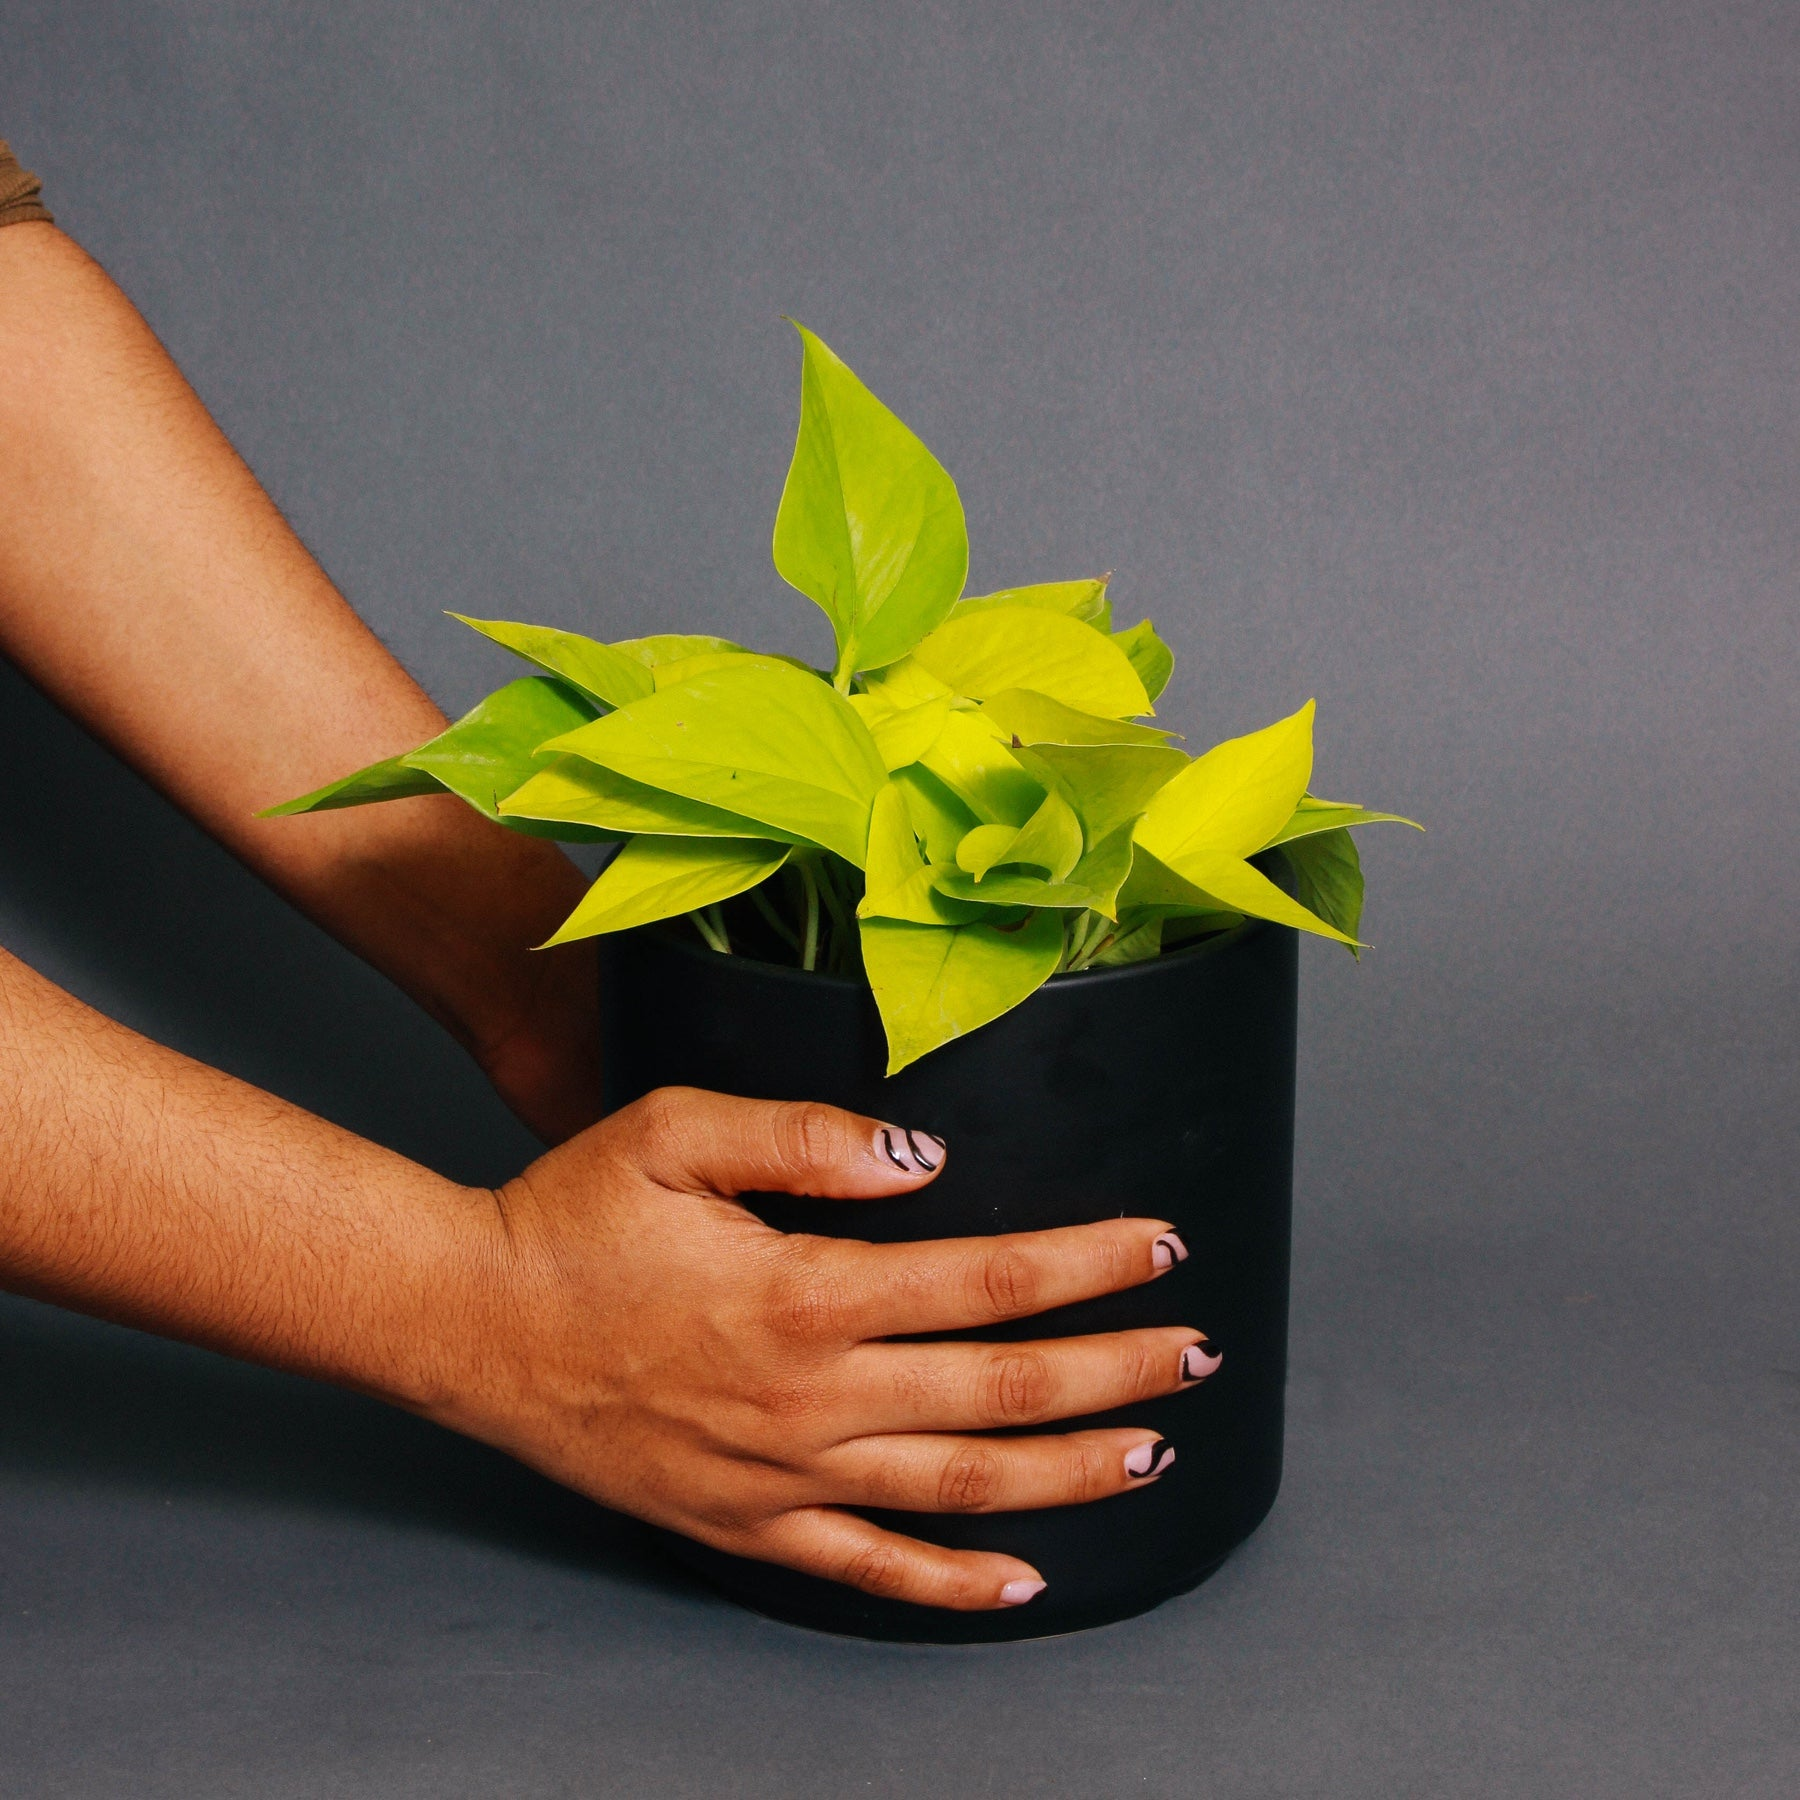 Hands place a potted plant on a grey surface